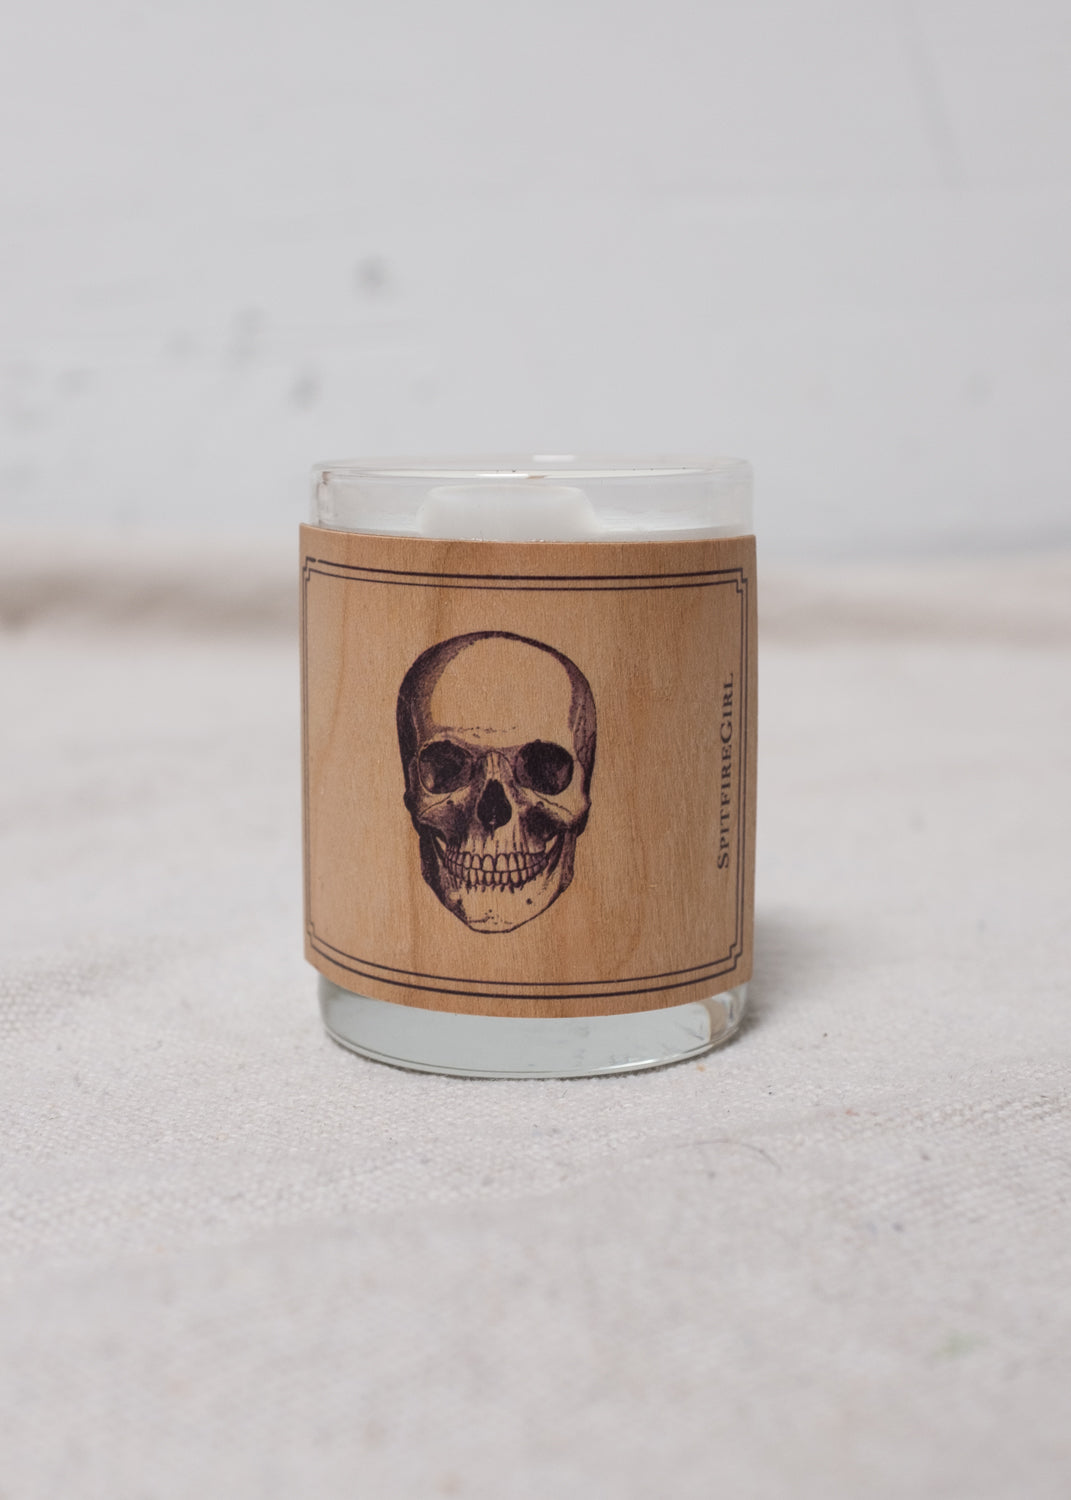 Candle with skull casing.